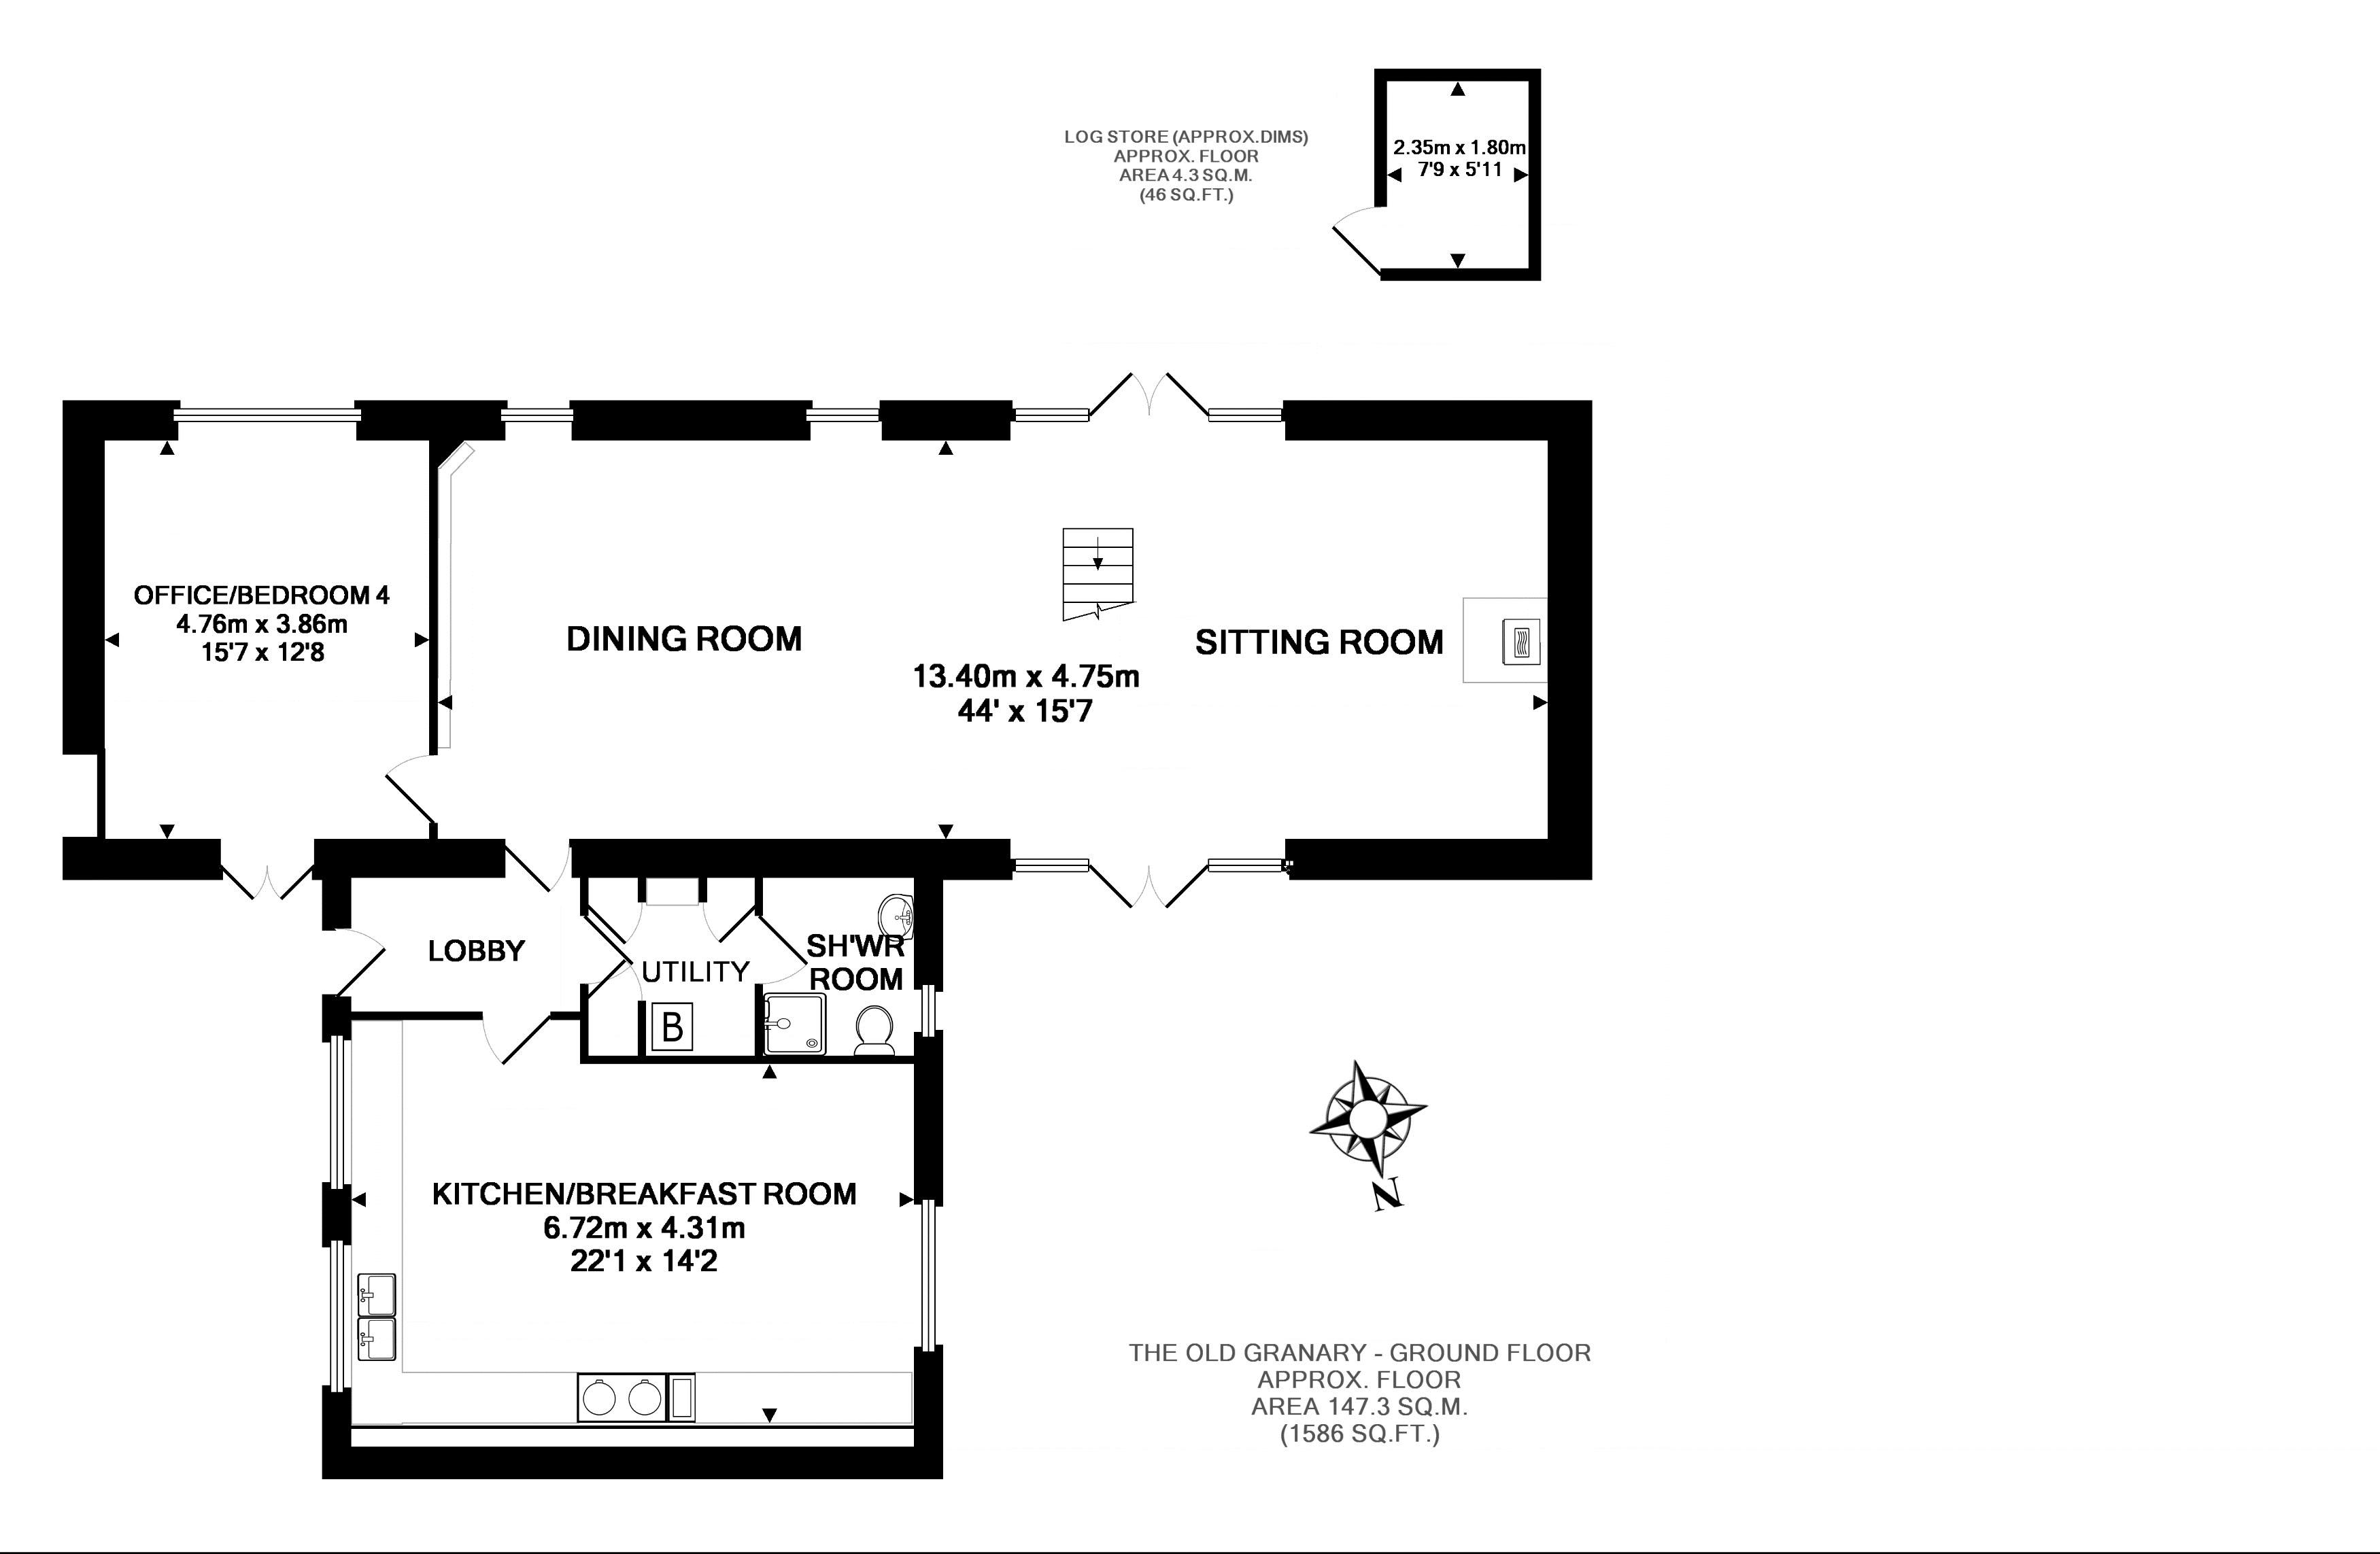 FLOORPLAN: The Old Granary - Ground Floor